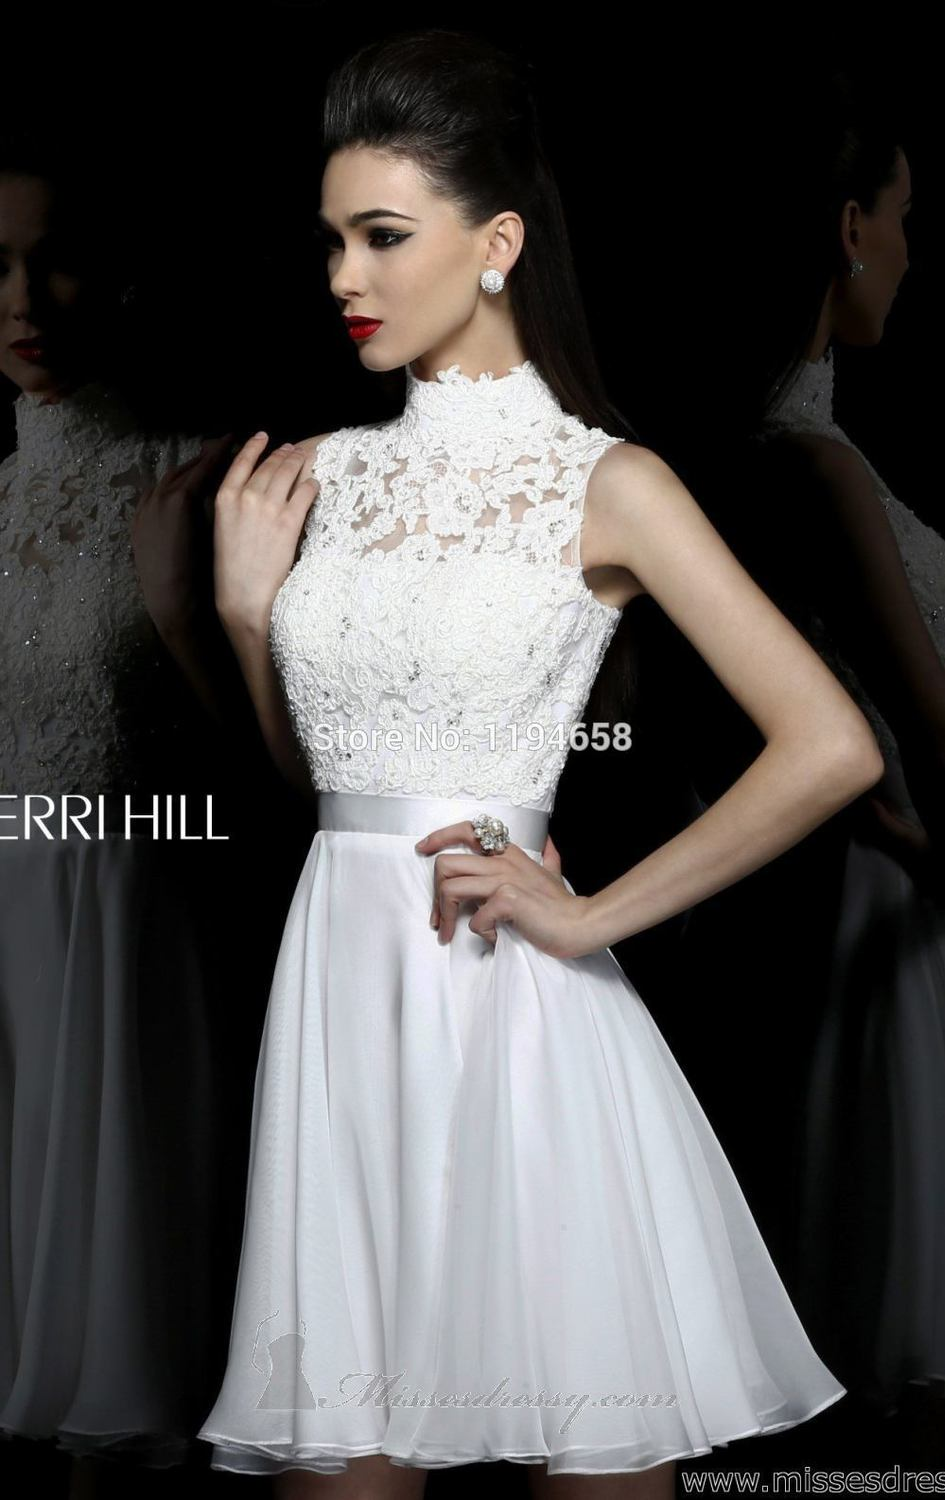 Cozy Free Shipping 2013 Sexy New Short Prom Dresses Pink Beaded Lace Neck Chiffon Graduation Dresses Graduation Forever 21 Dresses Graduation Size